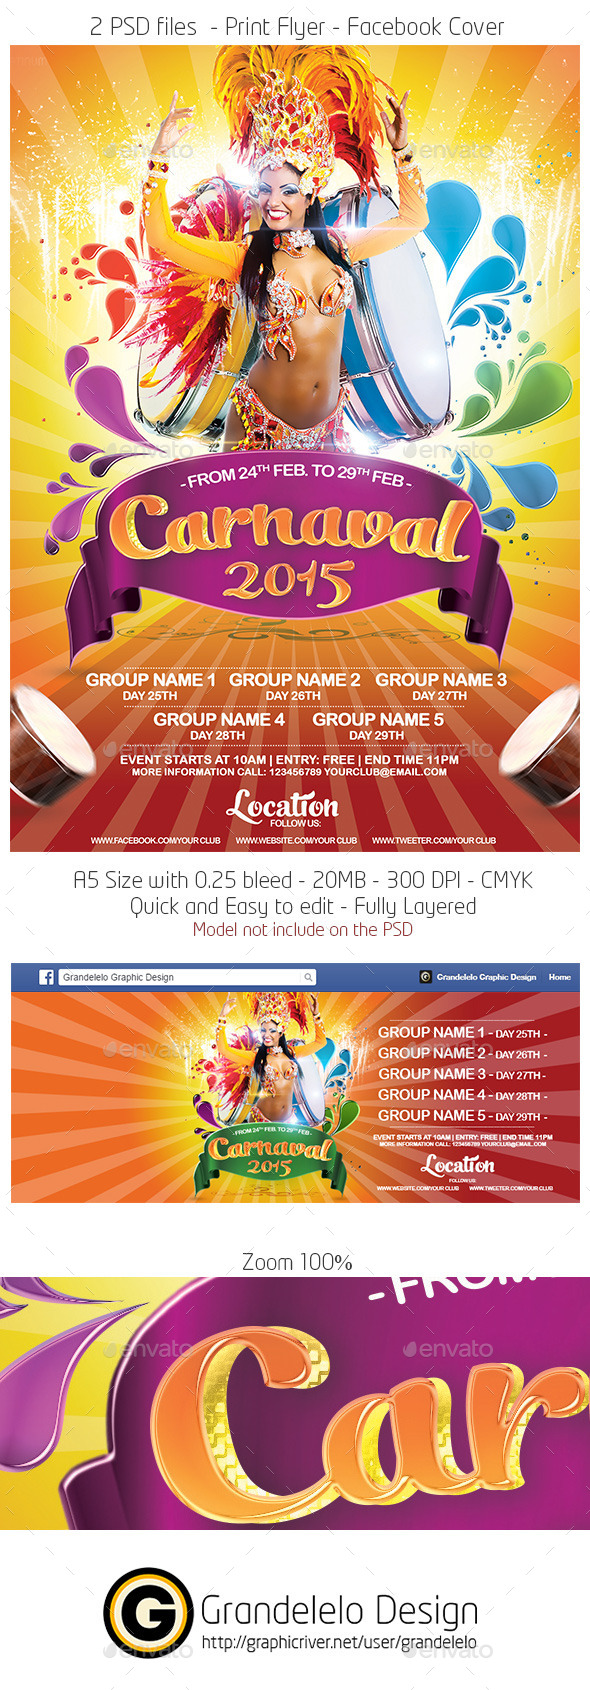 free carnival flyer template word .